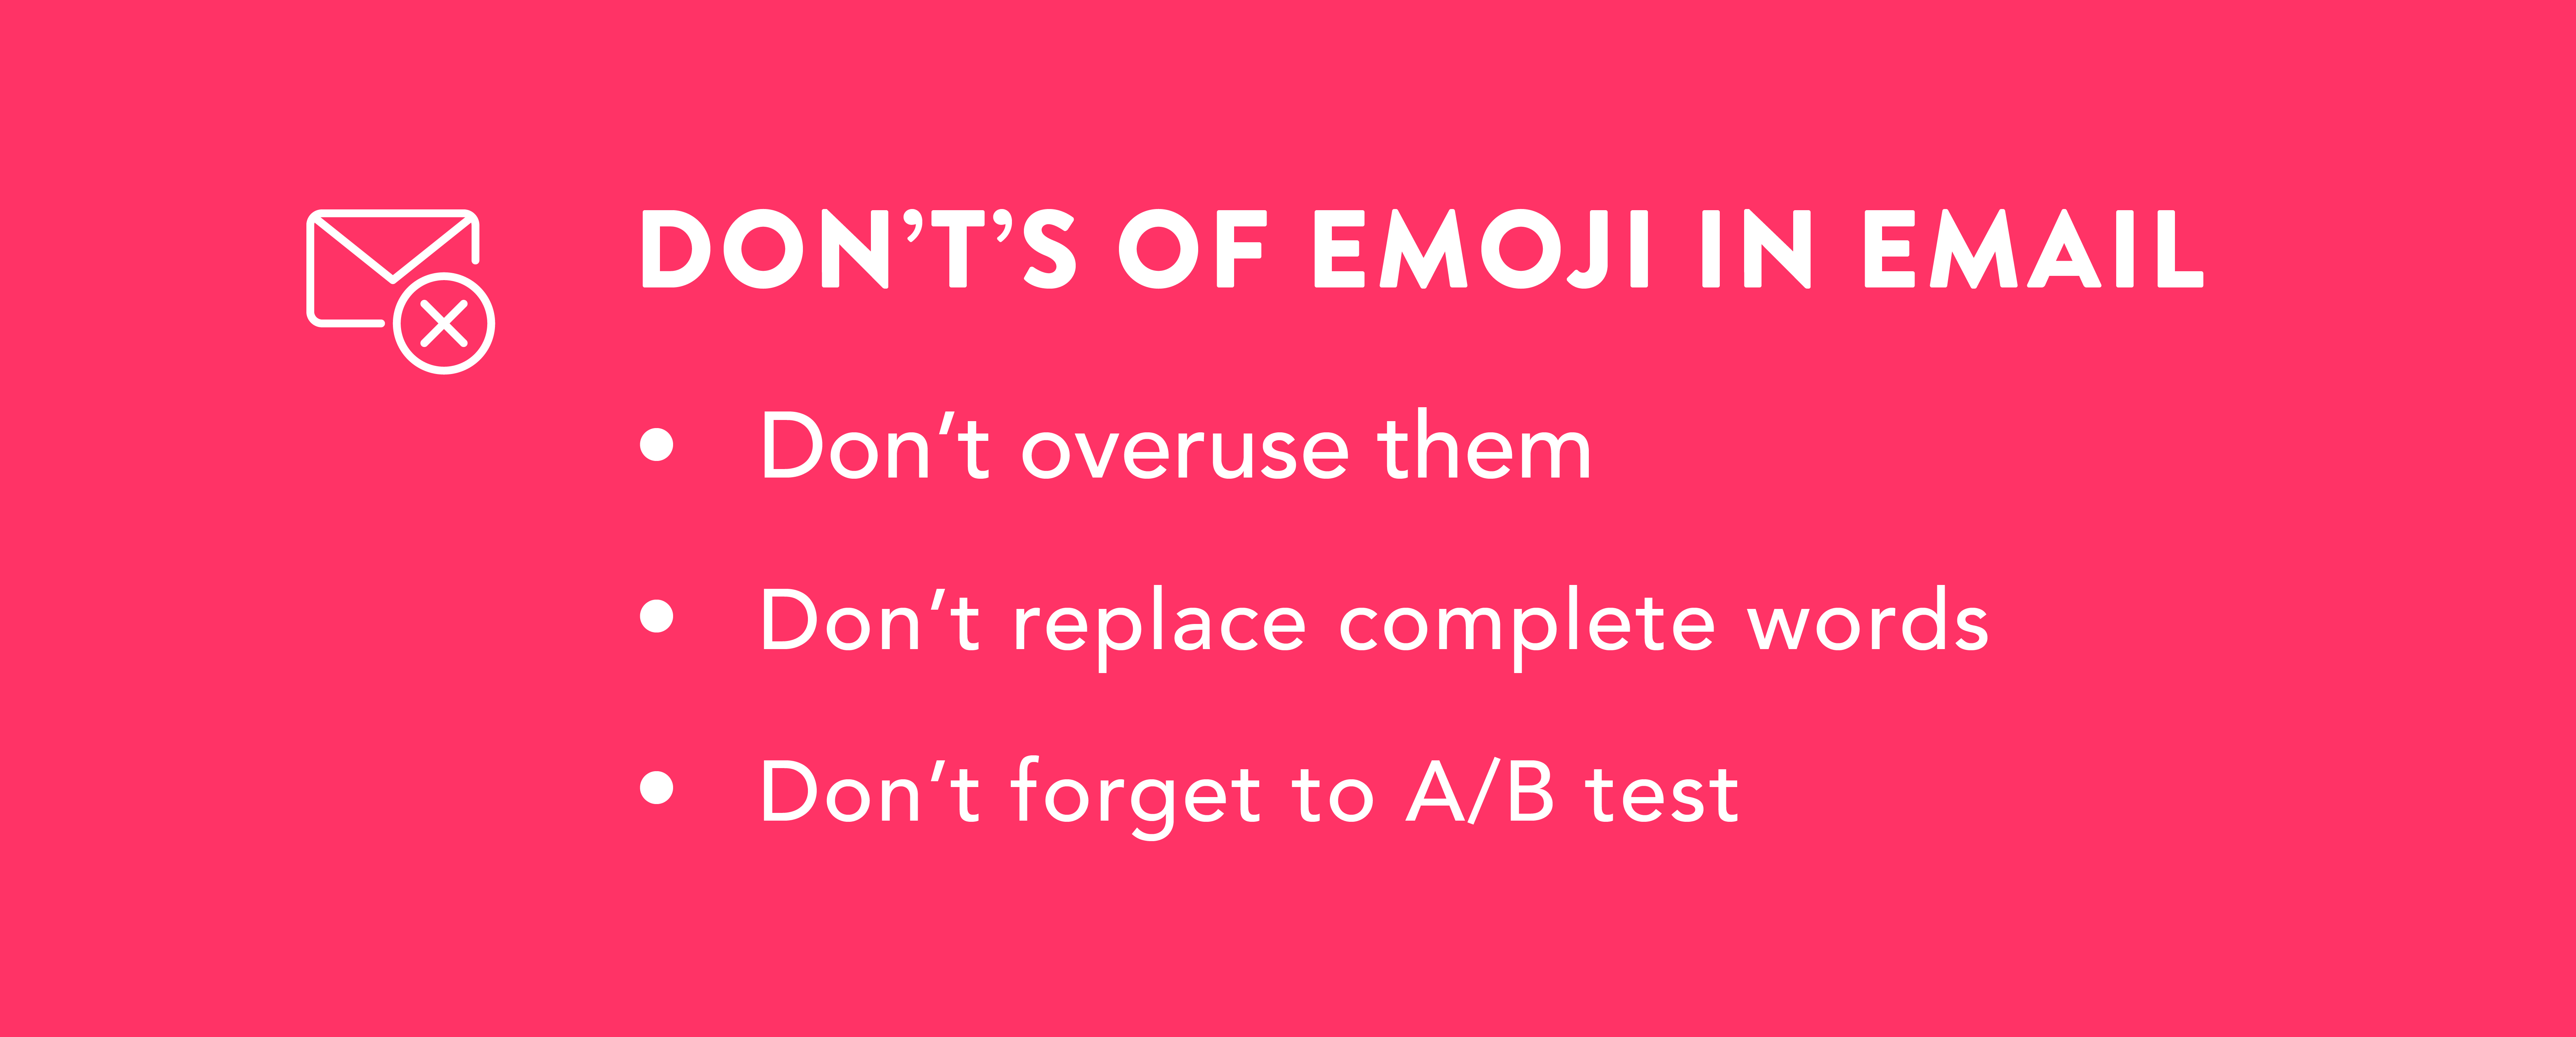 Don't's of emoji in email